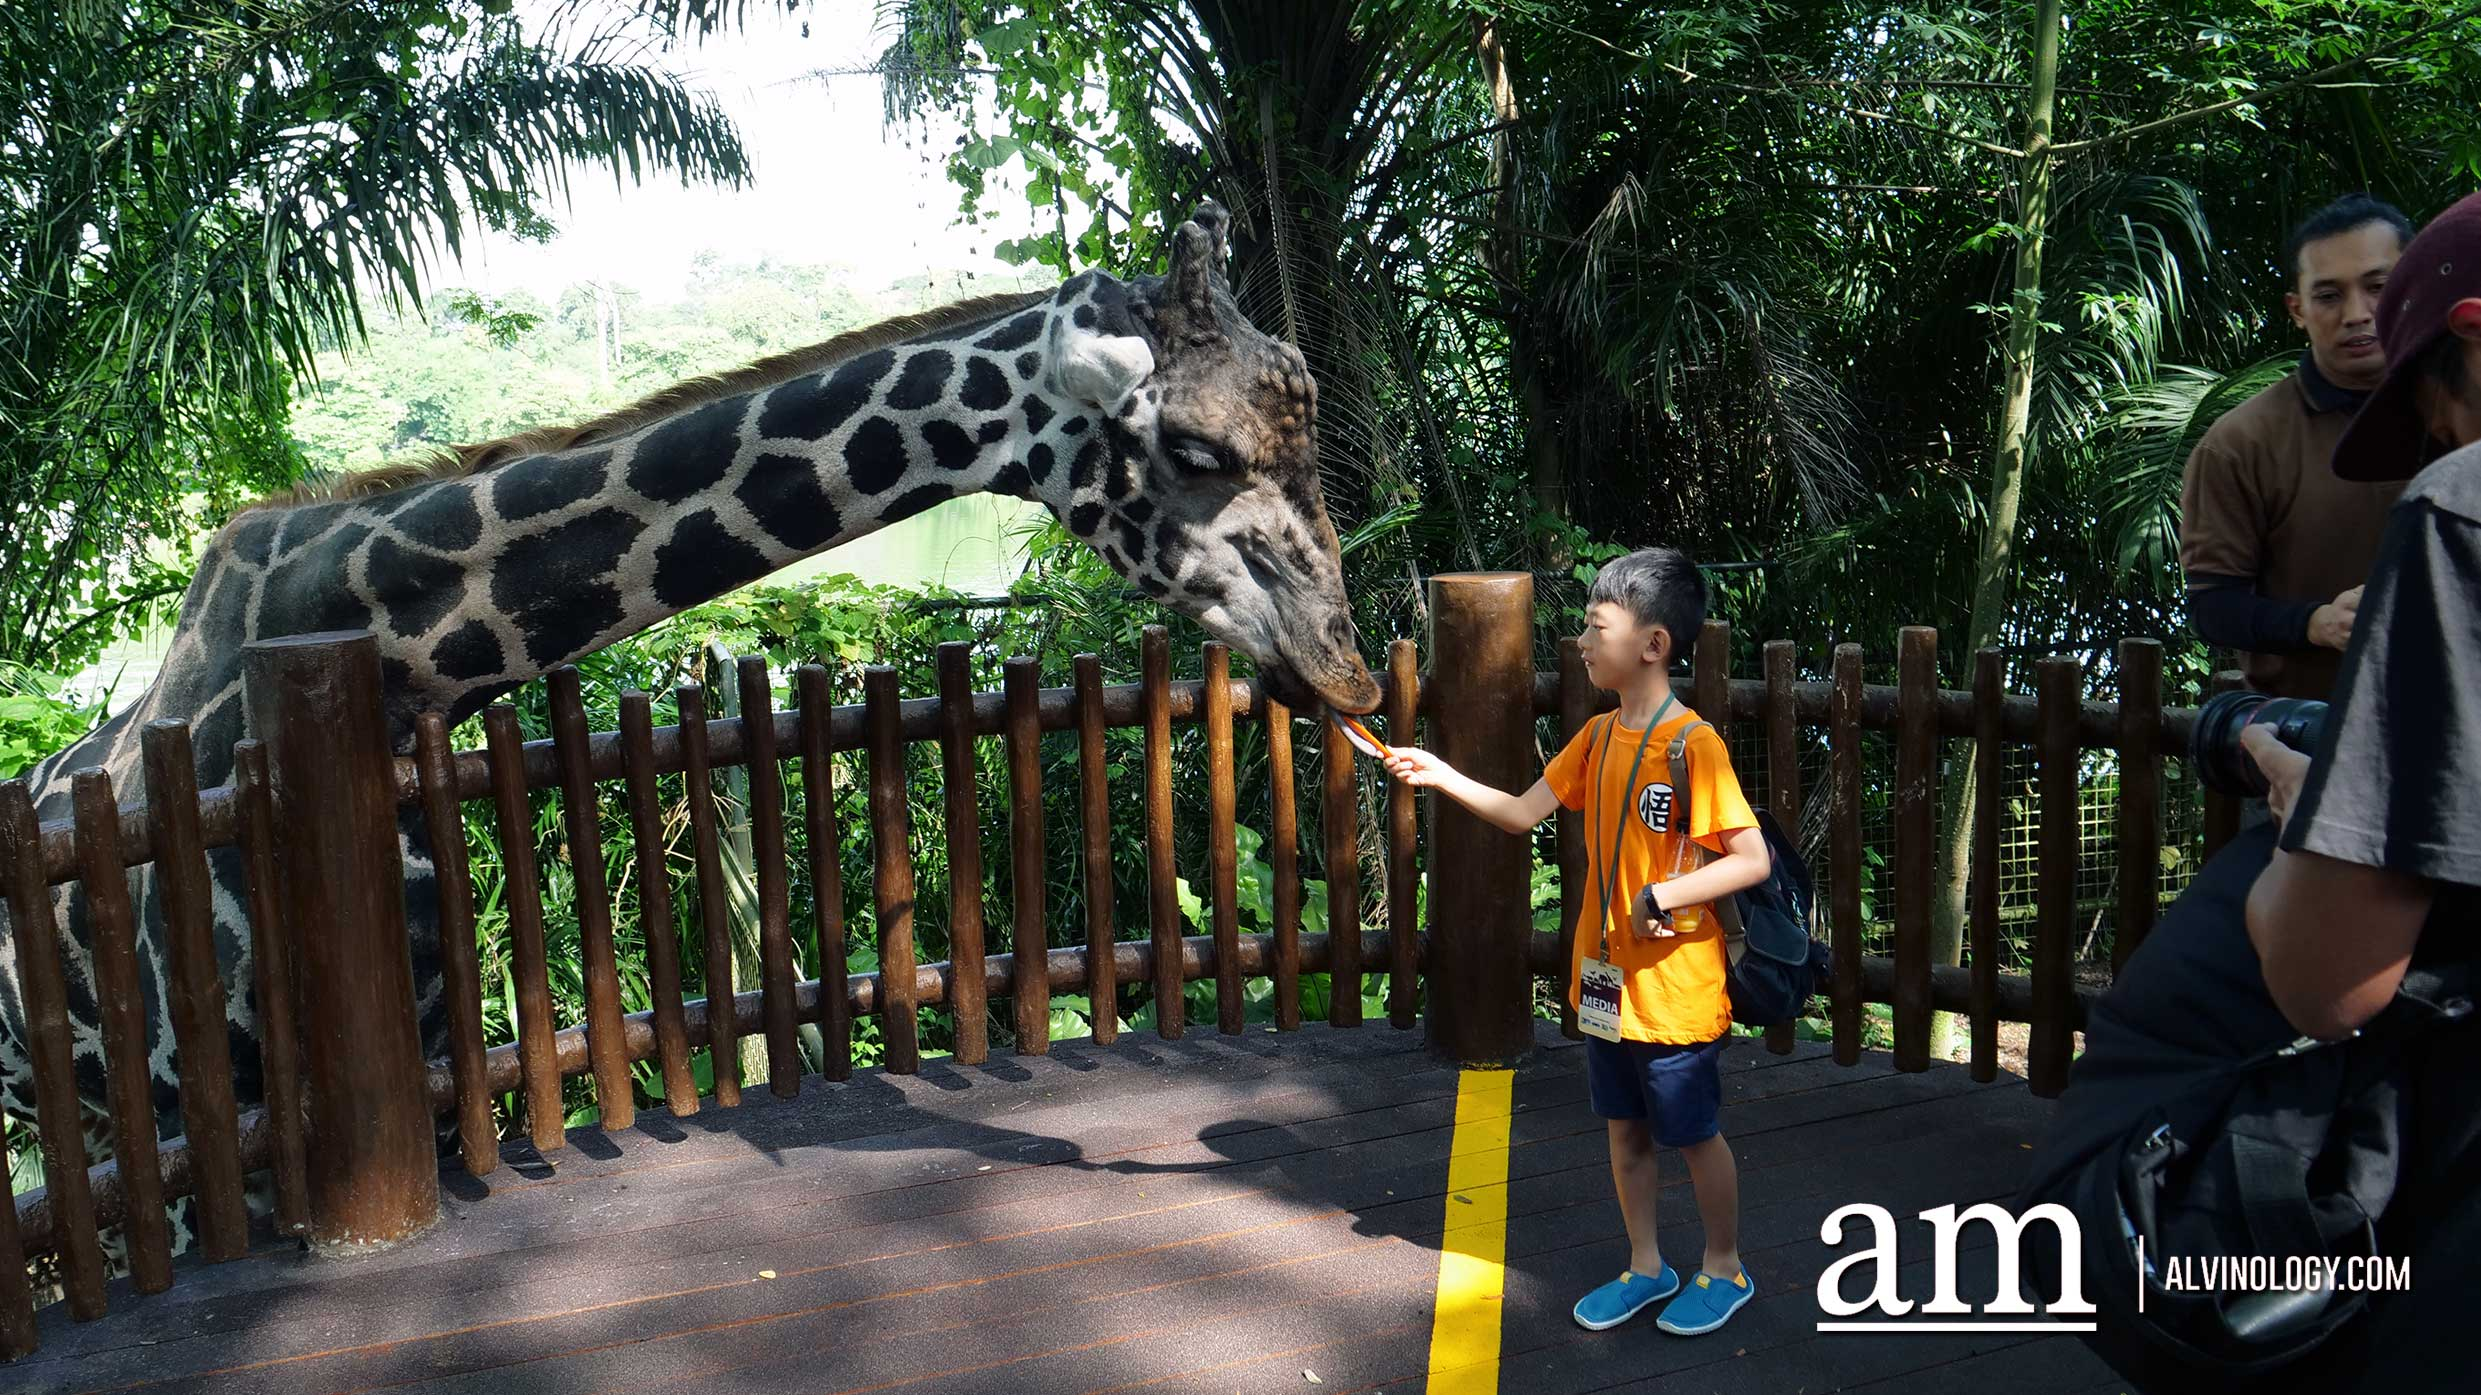 Experience Disney's The Lion King in real-life at the Singapore Zoo and Night Safari - Alvinology